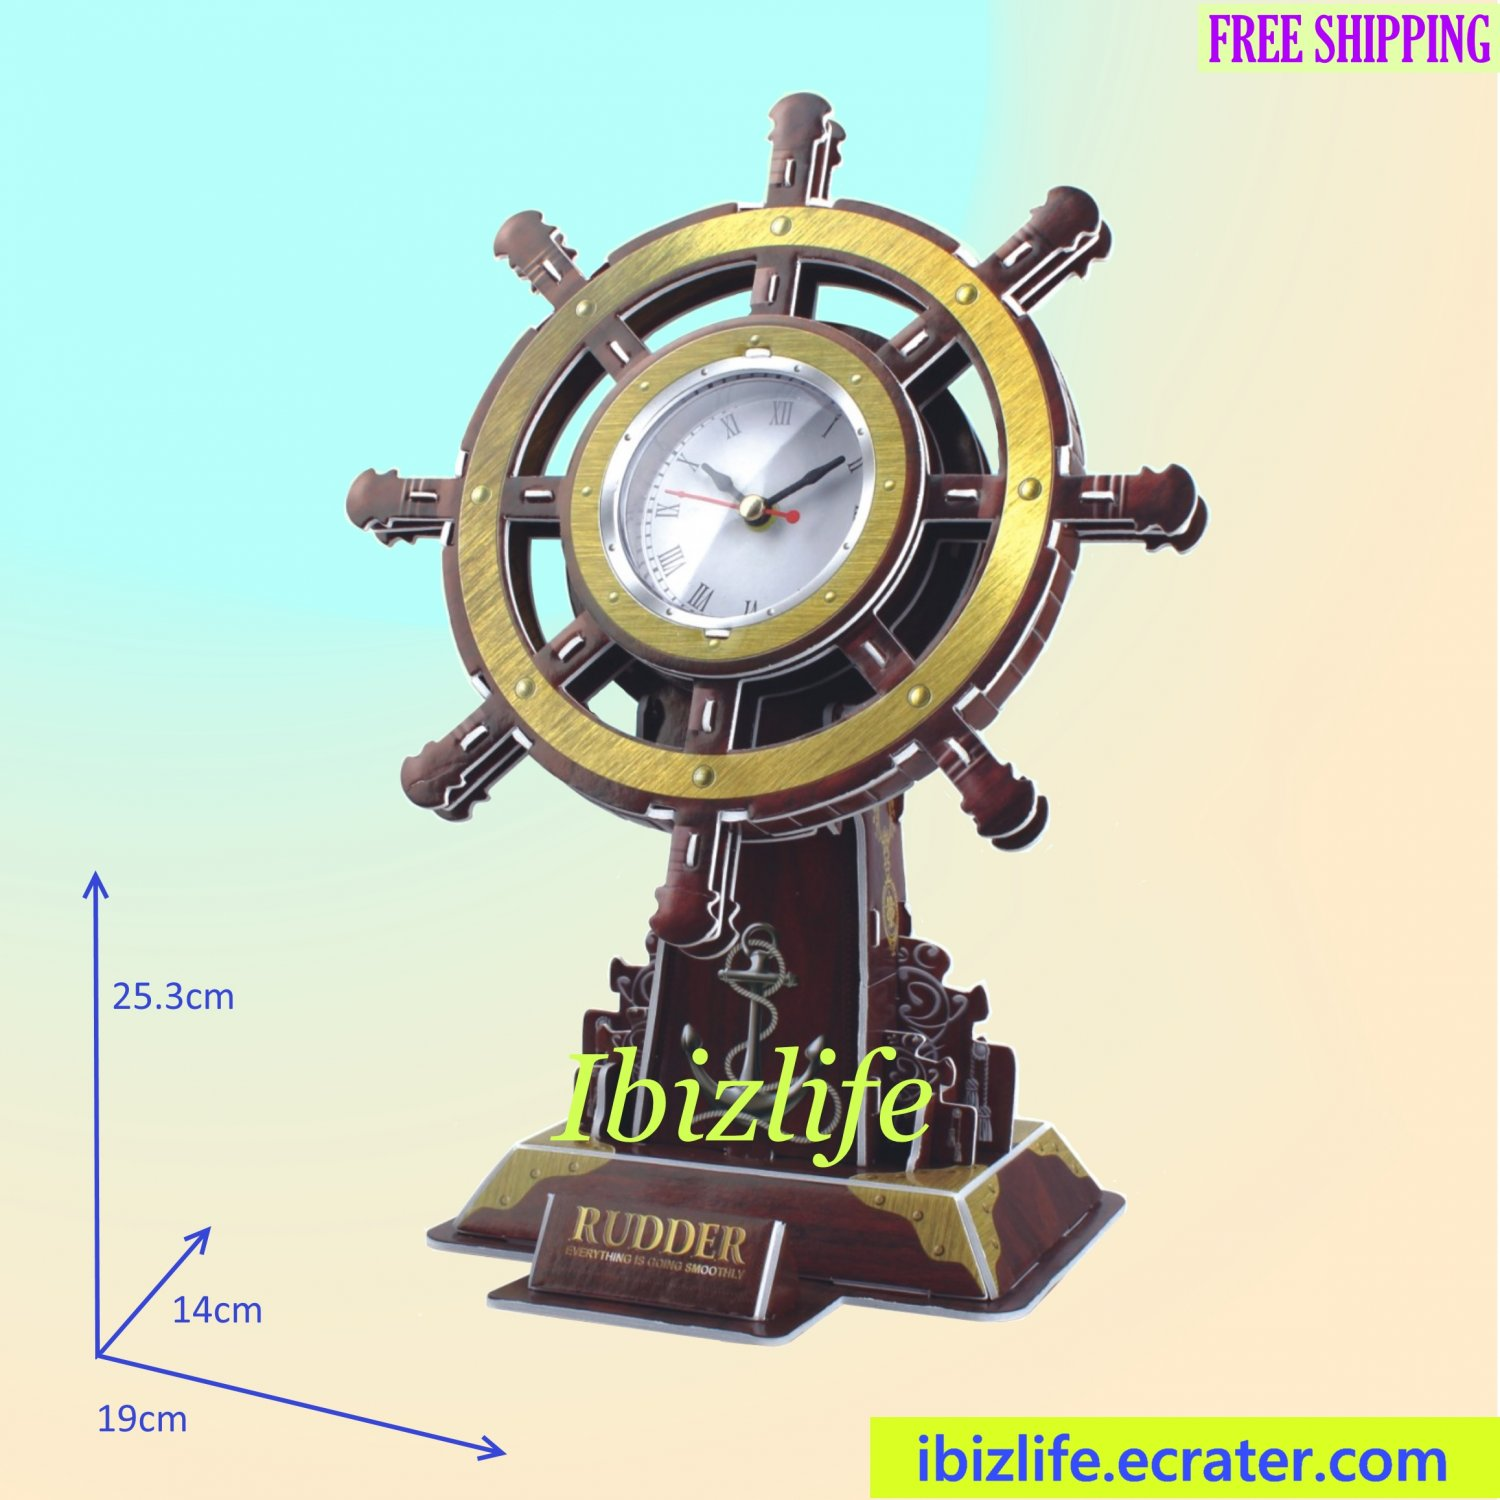 Exquisite Rudder Desktop Table Clock in 3D puzzle 54 pcs DIY model as decoration/ gift item (pc67)